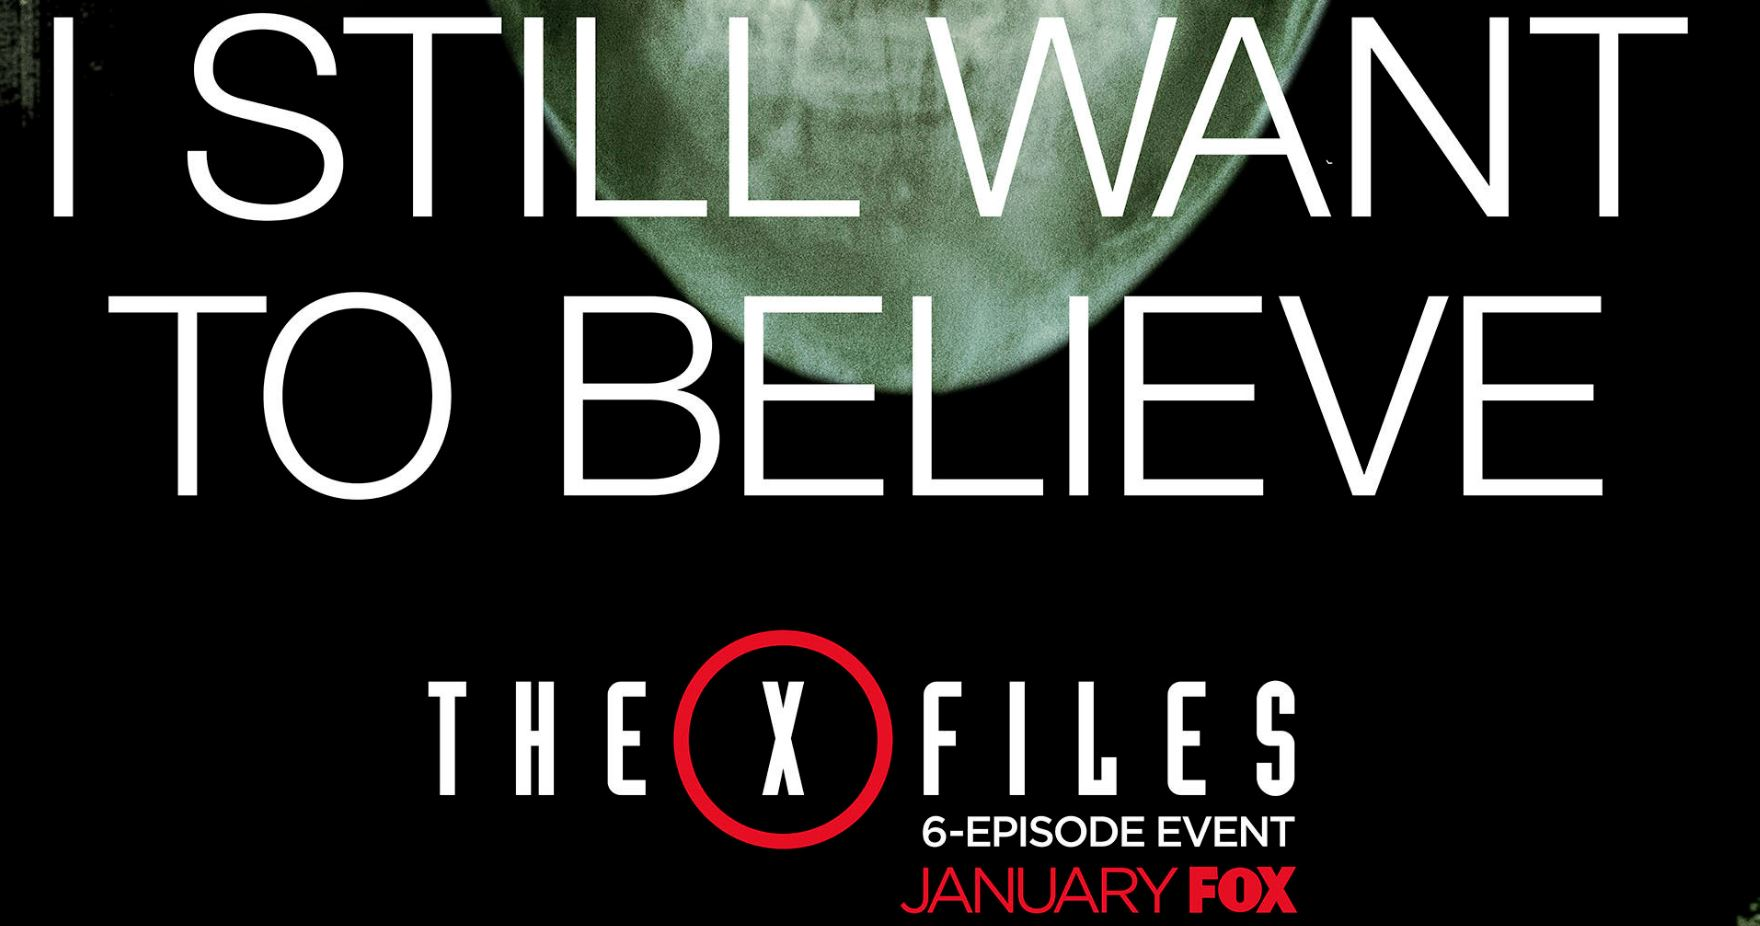 The X-Files (miniseries) - I still want to believe